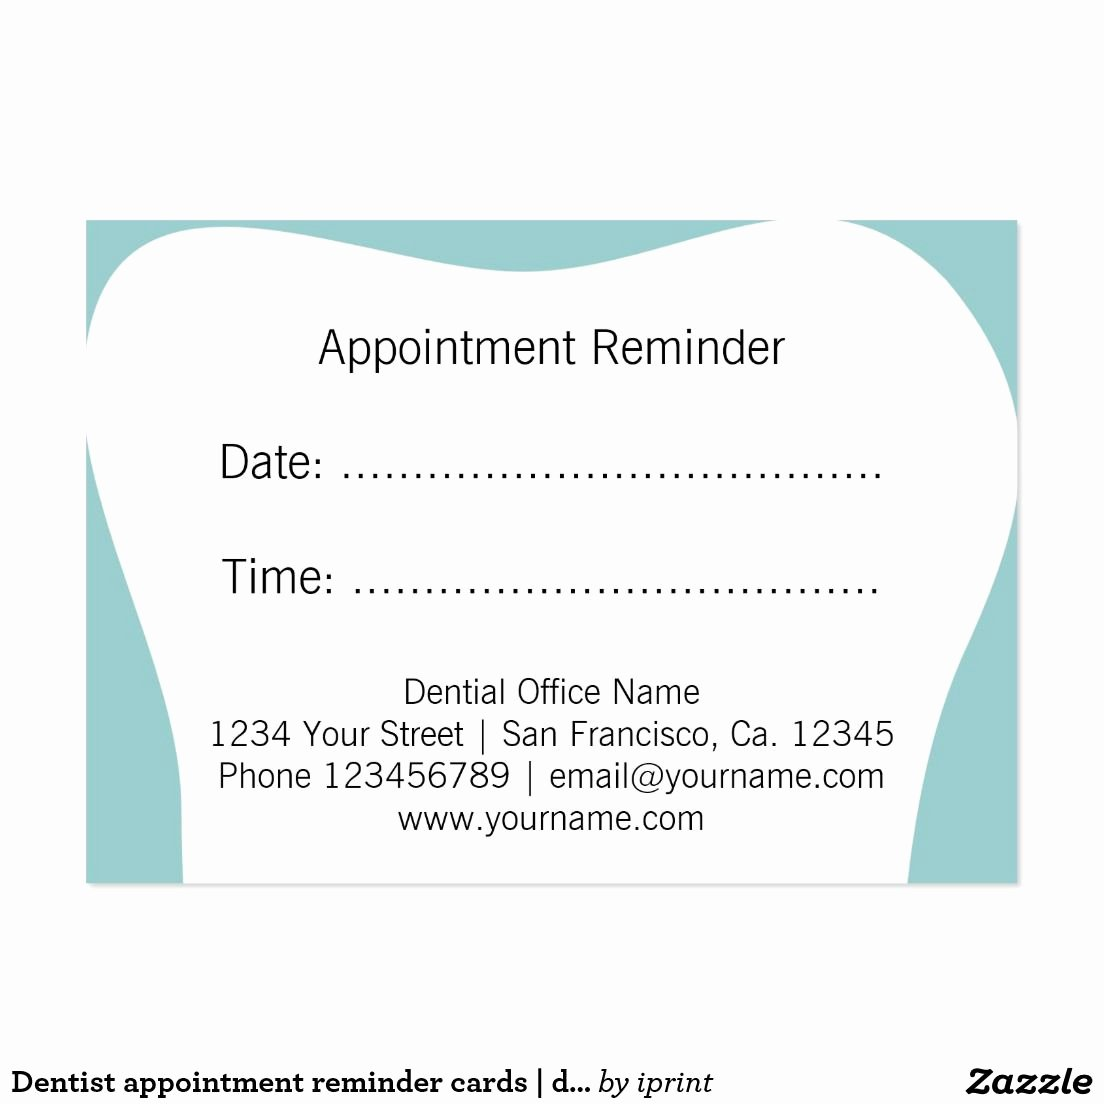 Free Printable Appointment Reminder Cards Inspirational Dentist Appointment Reminder Cards